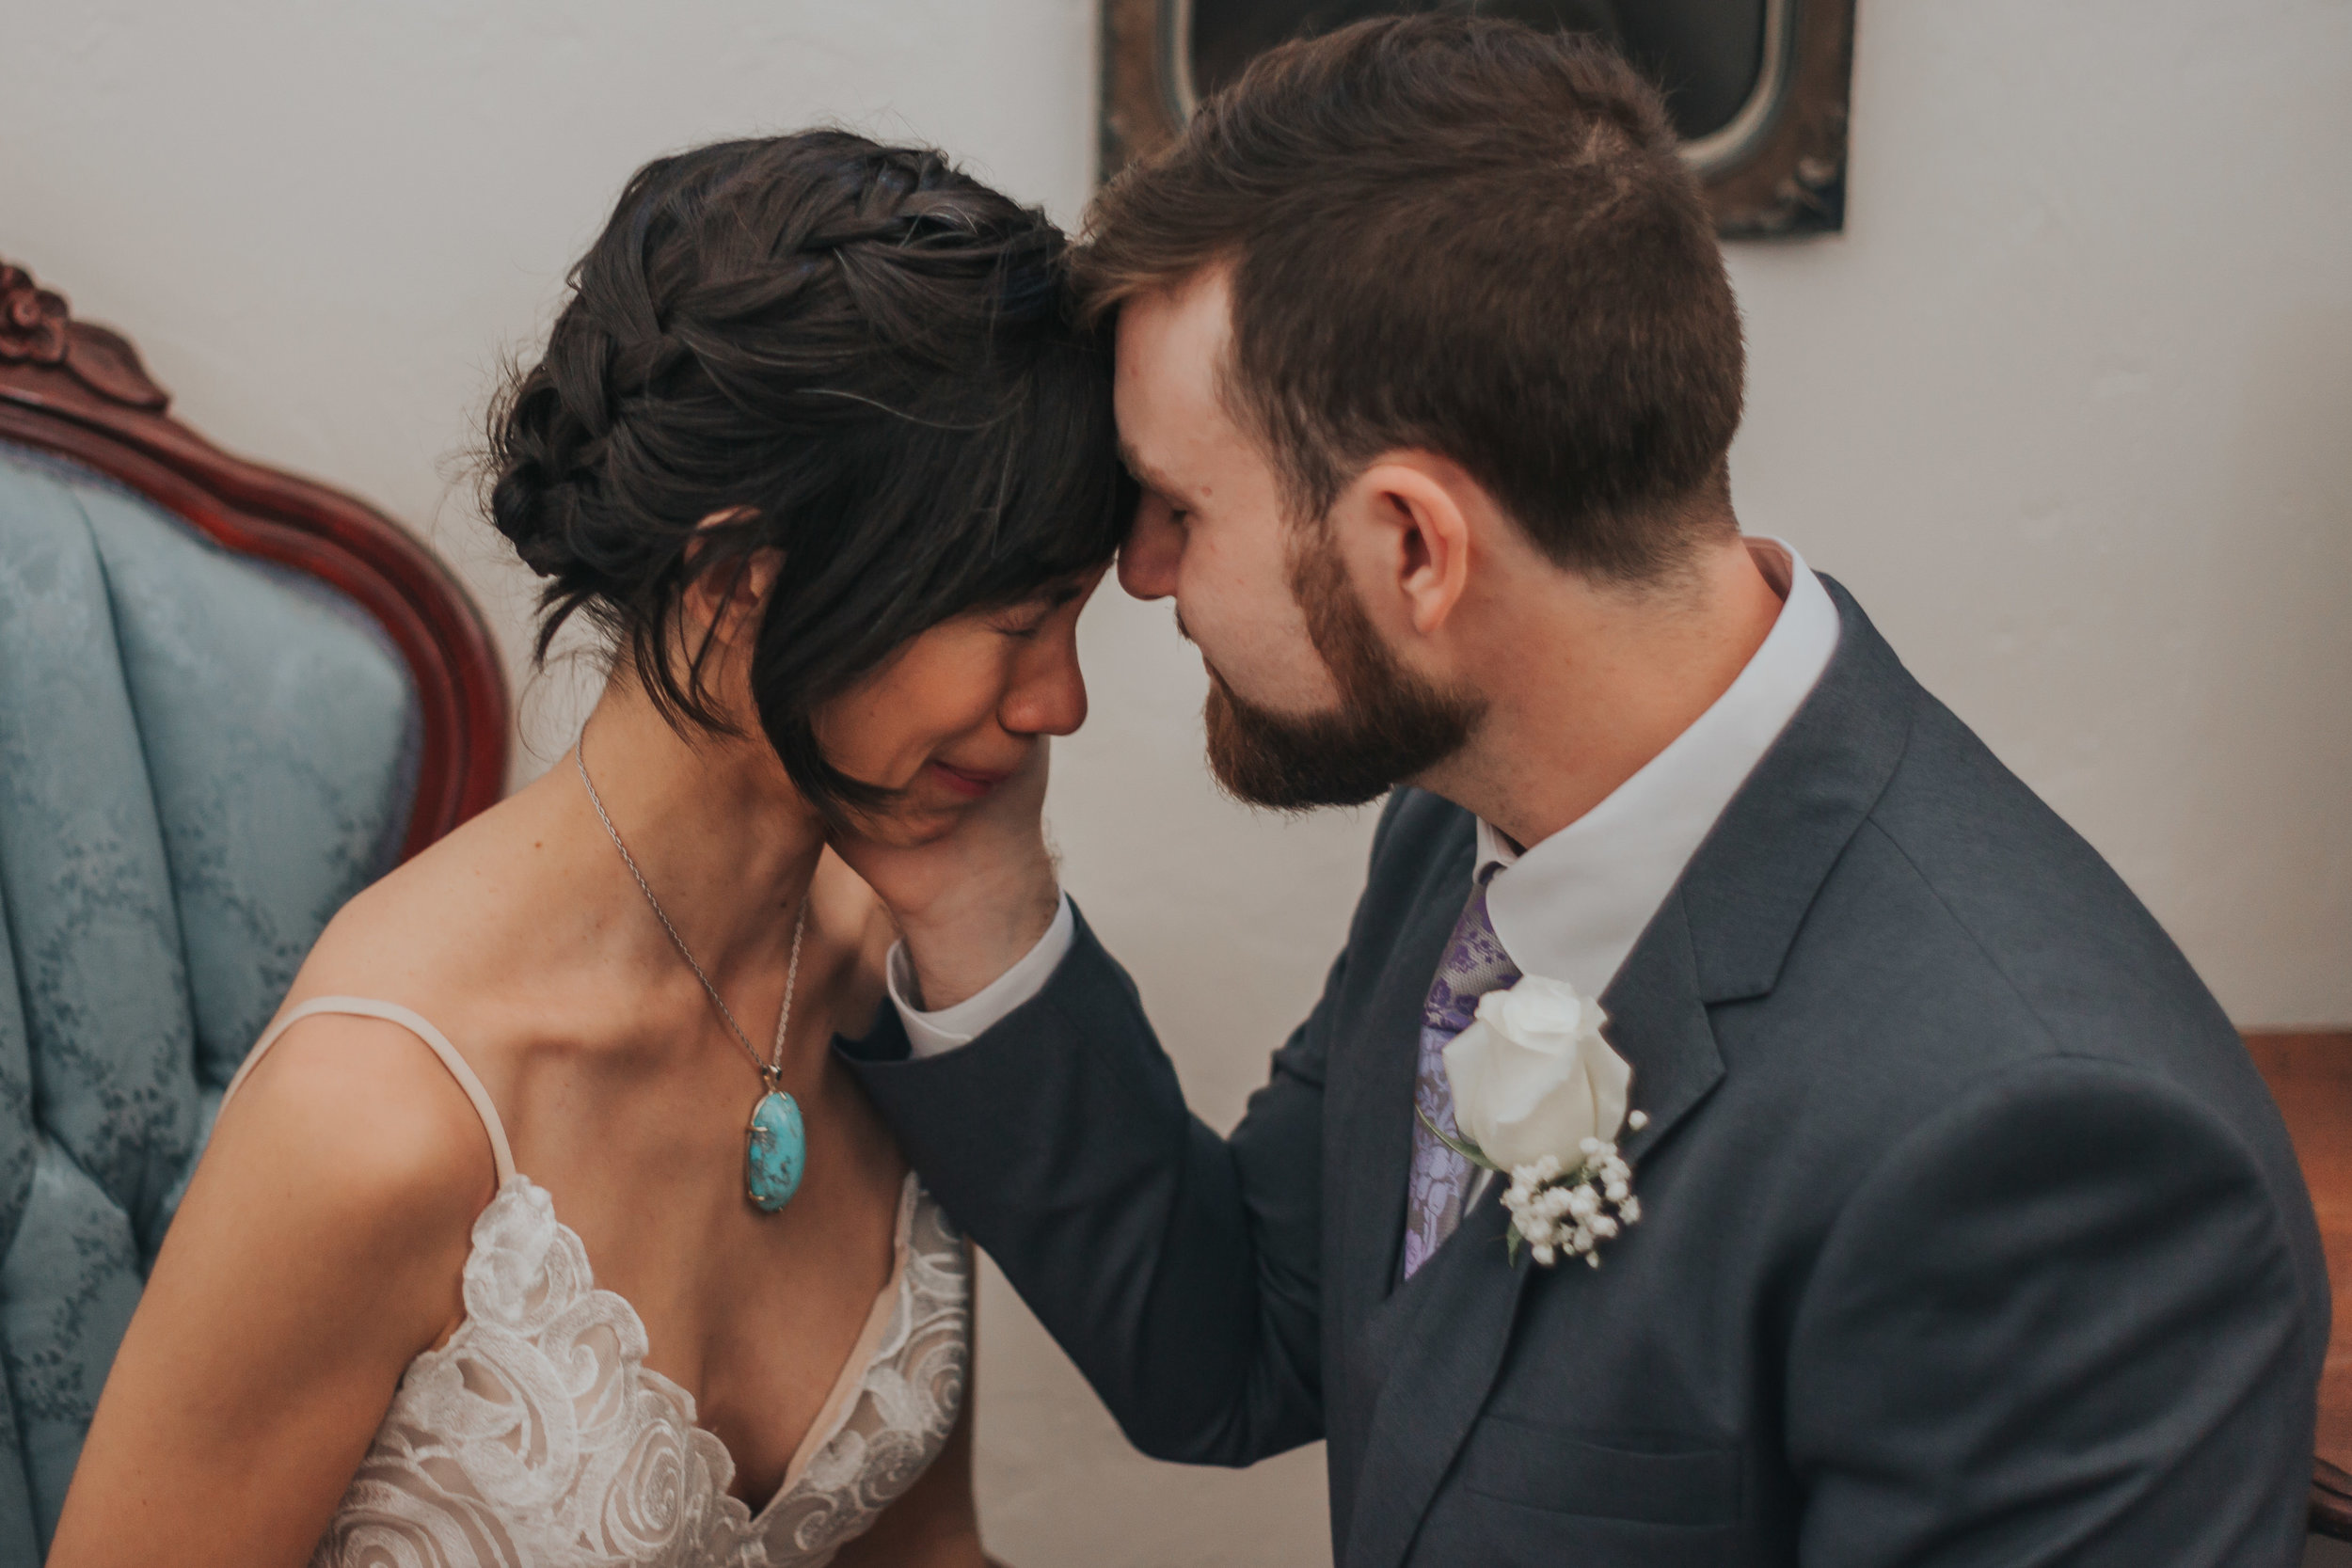 Pennsylvania Bed & Breakfast Wedding - Battlefield Bed & Breakfast was the sun-filled wintry wedding venue in Gettysburg, Pennsylvania that Sabrina and Luke chose for their intimate wedding.Read More